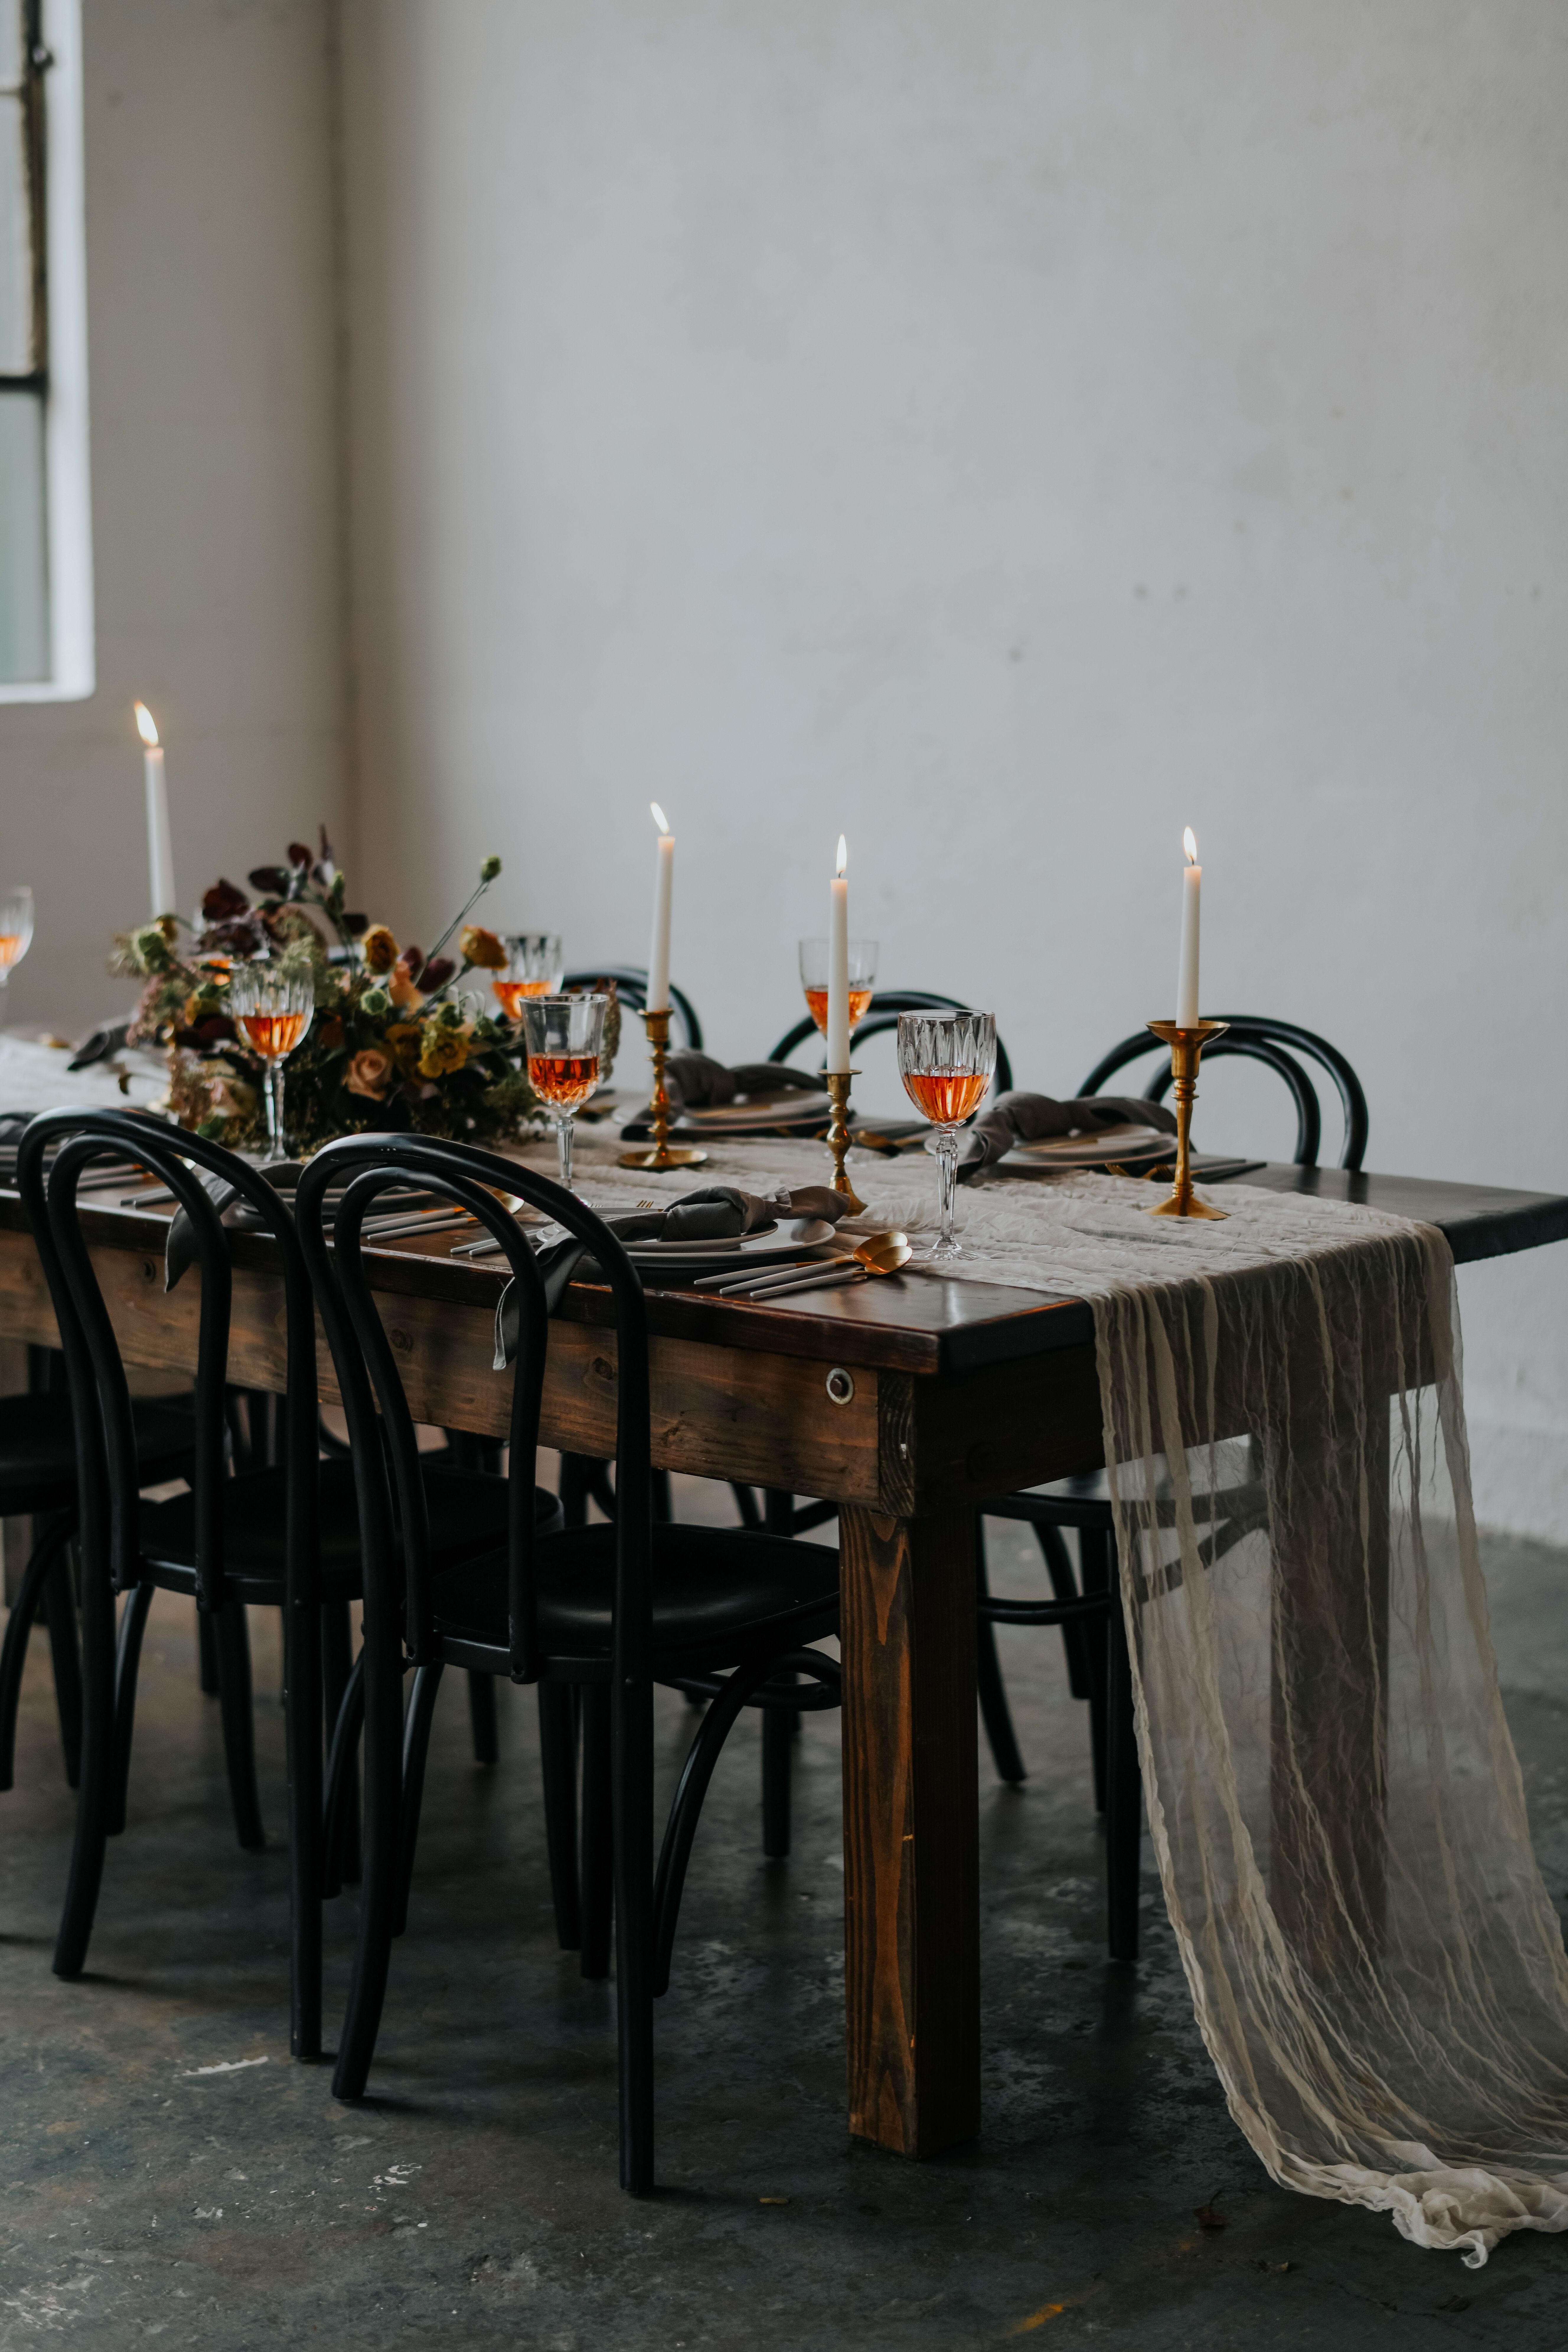 Tablescape With Long Wood Farm Table With Cheesecloth Gauze Runner In Blush With Black Chairs A Table Arrangements Wedding Wedding Chairs Table Runners Wedding